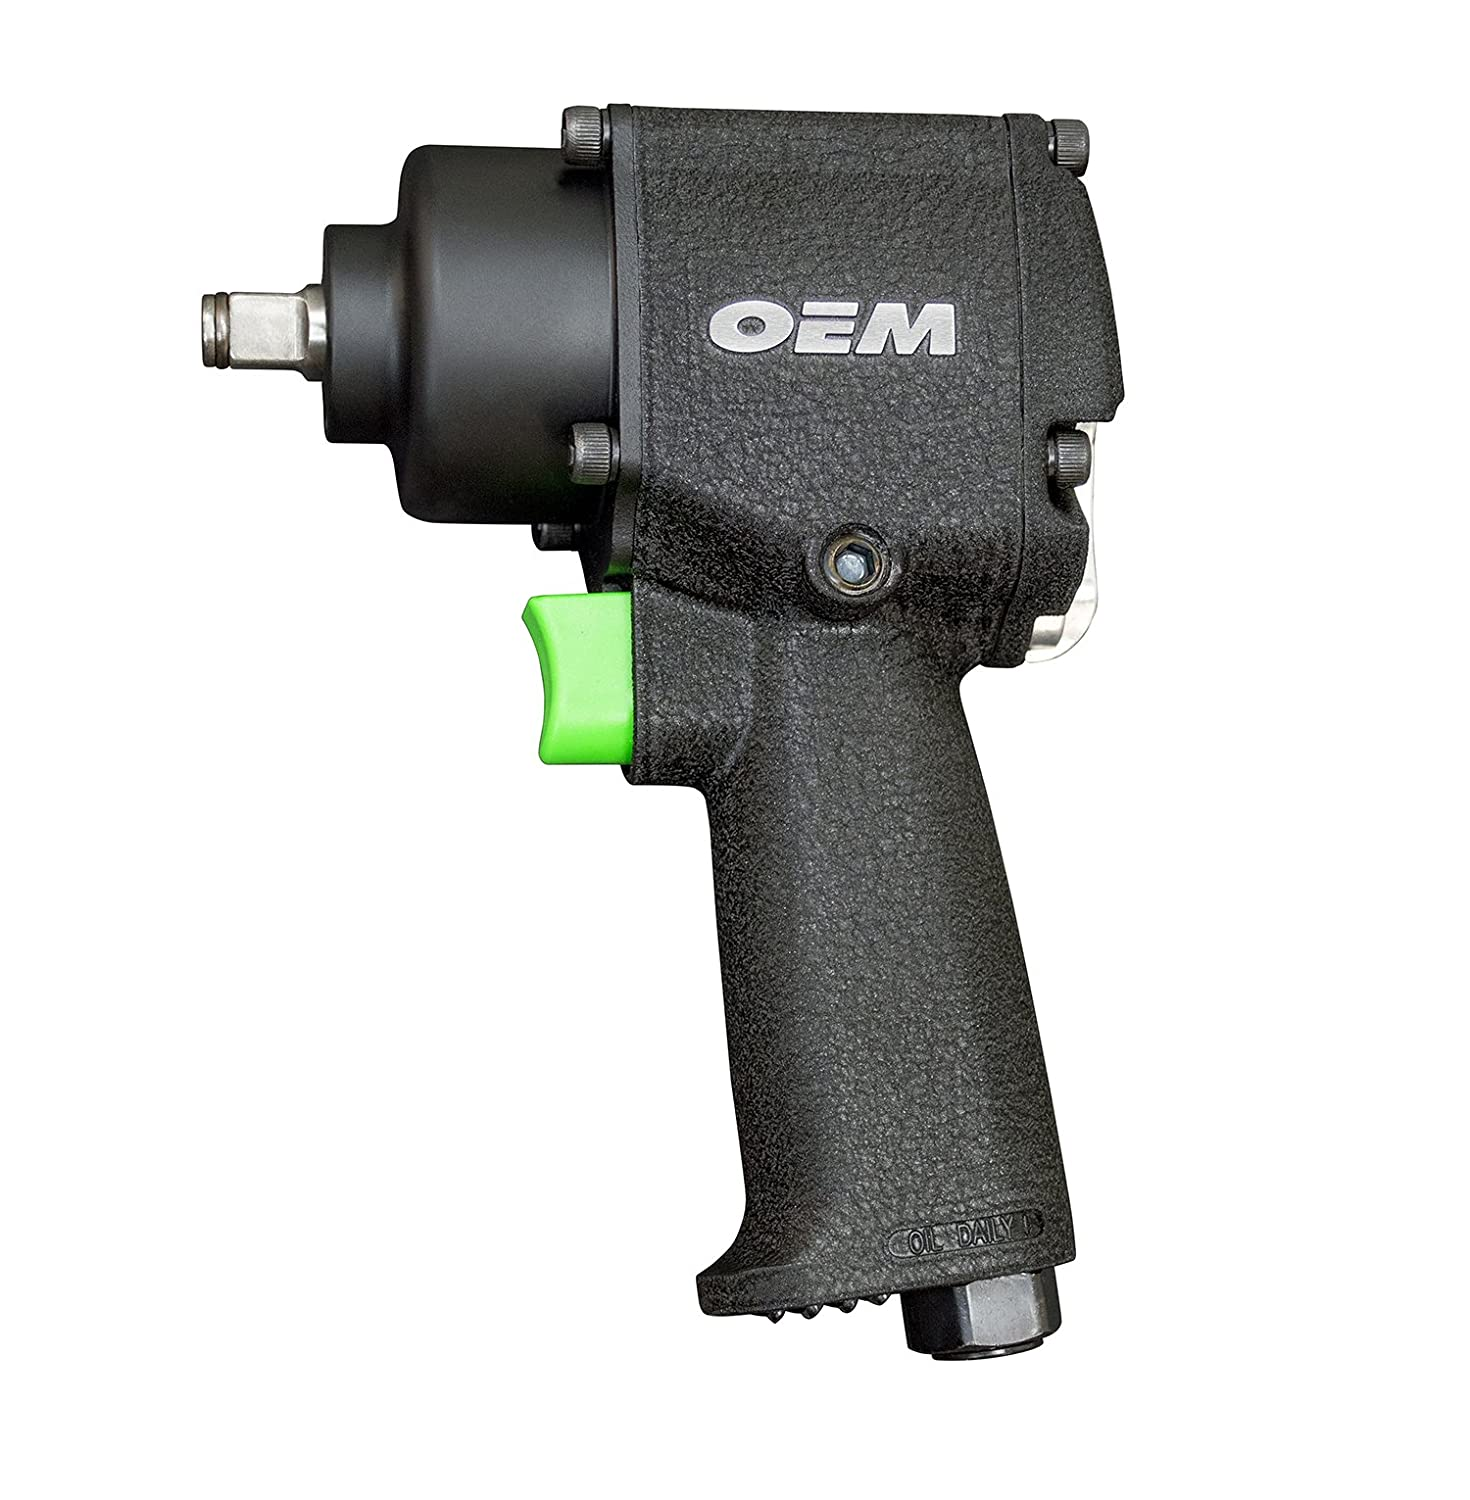 OEMTOOLS 24411 Mighty Compact 3/8